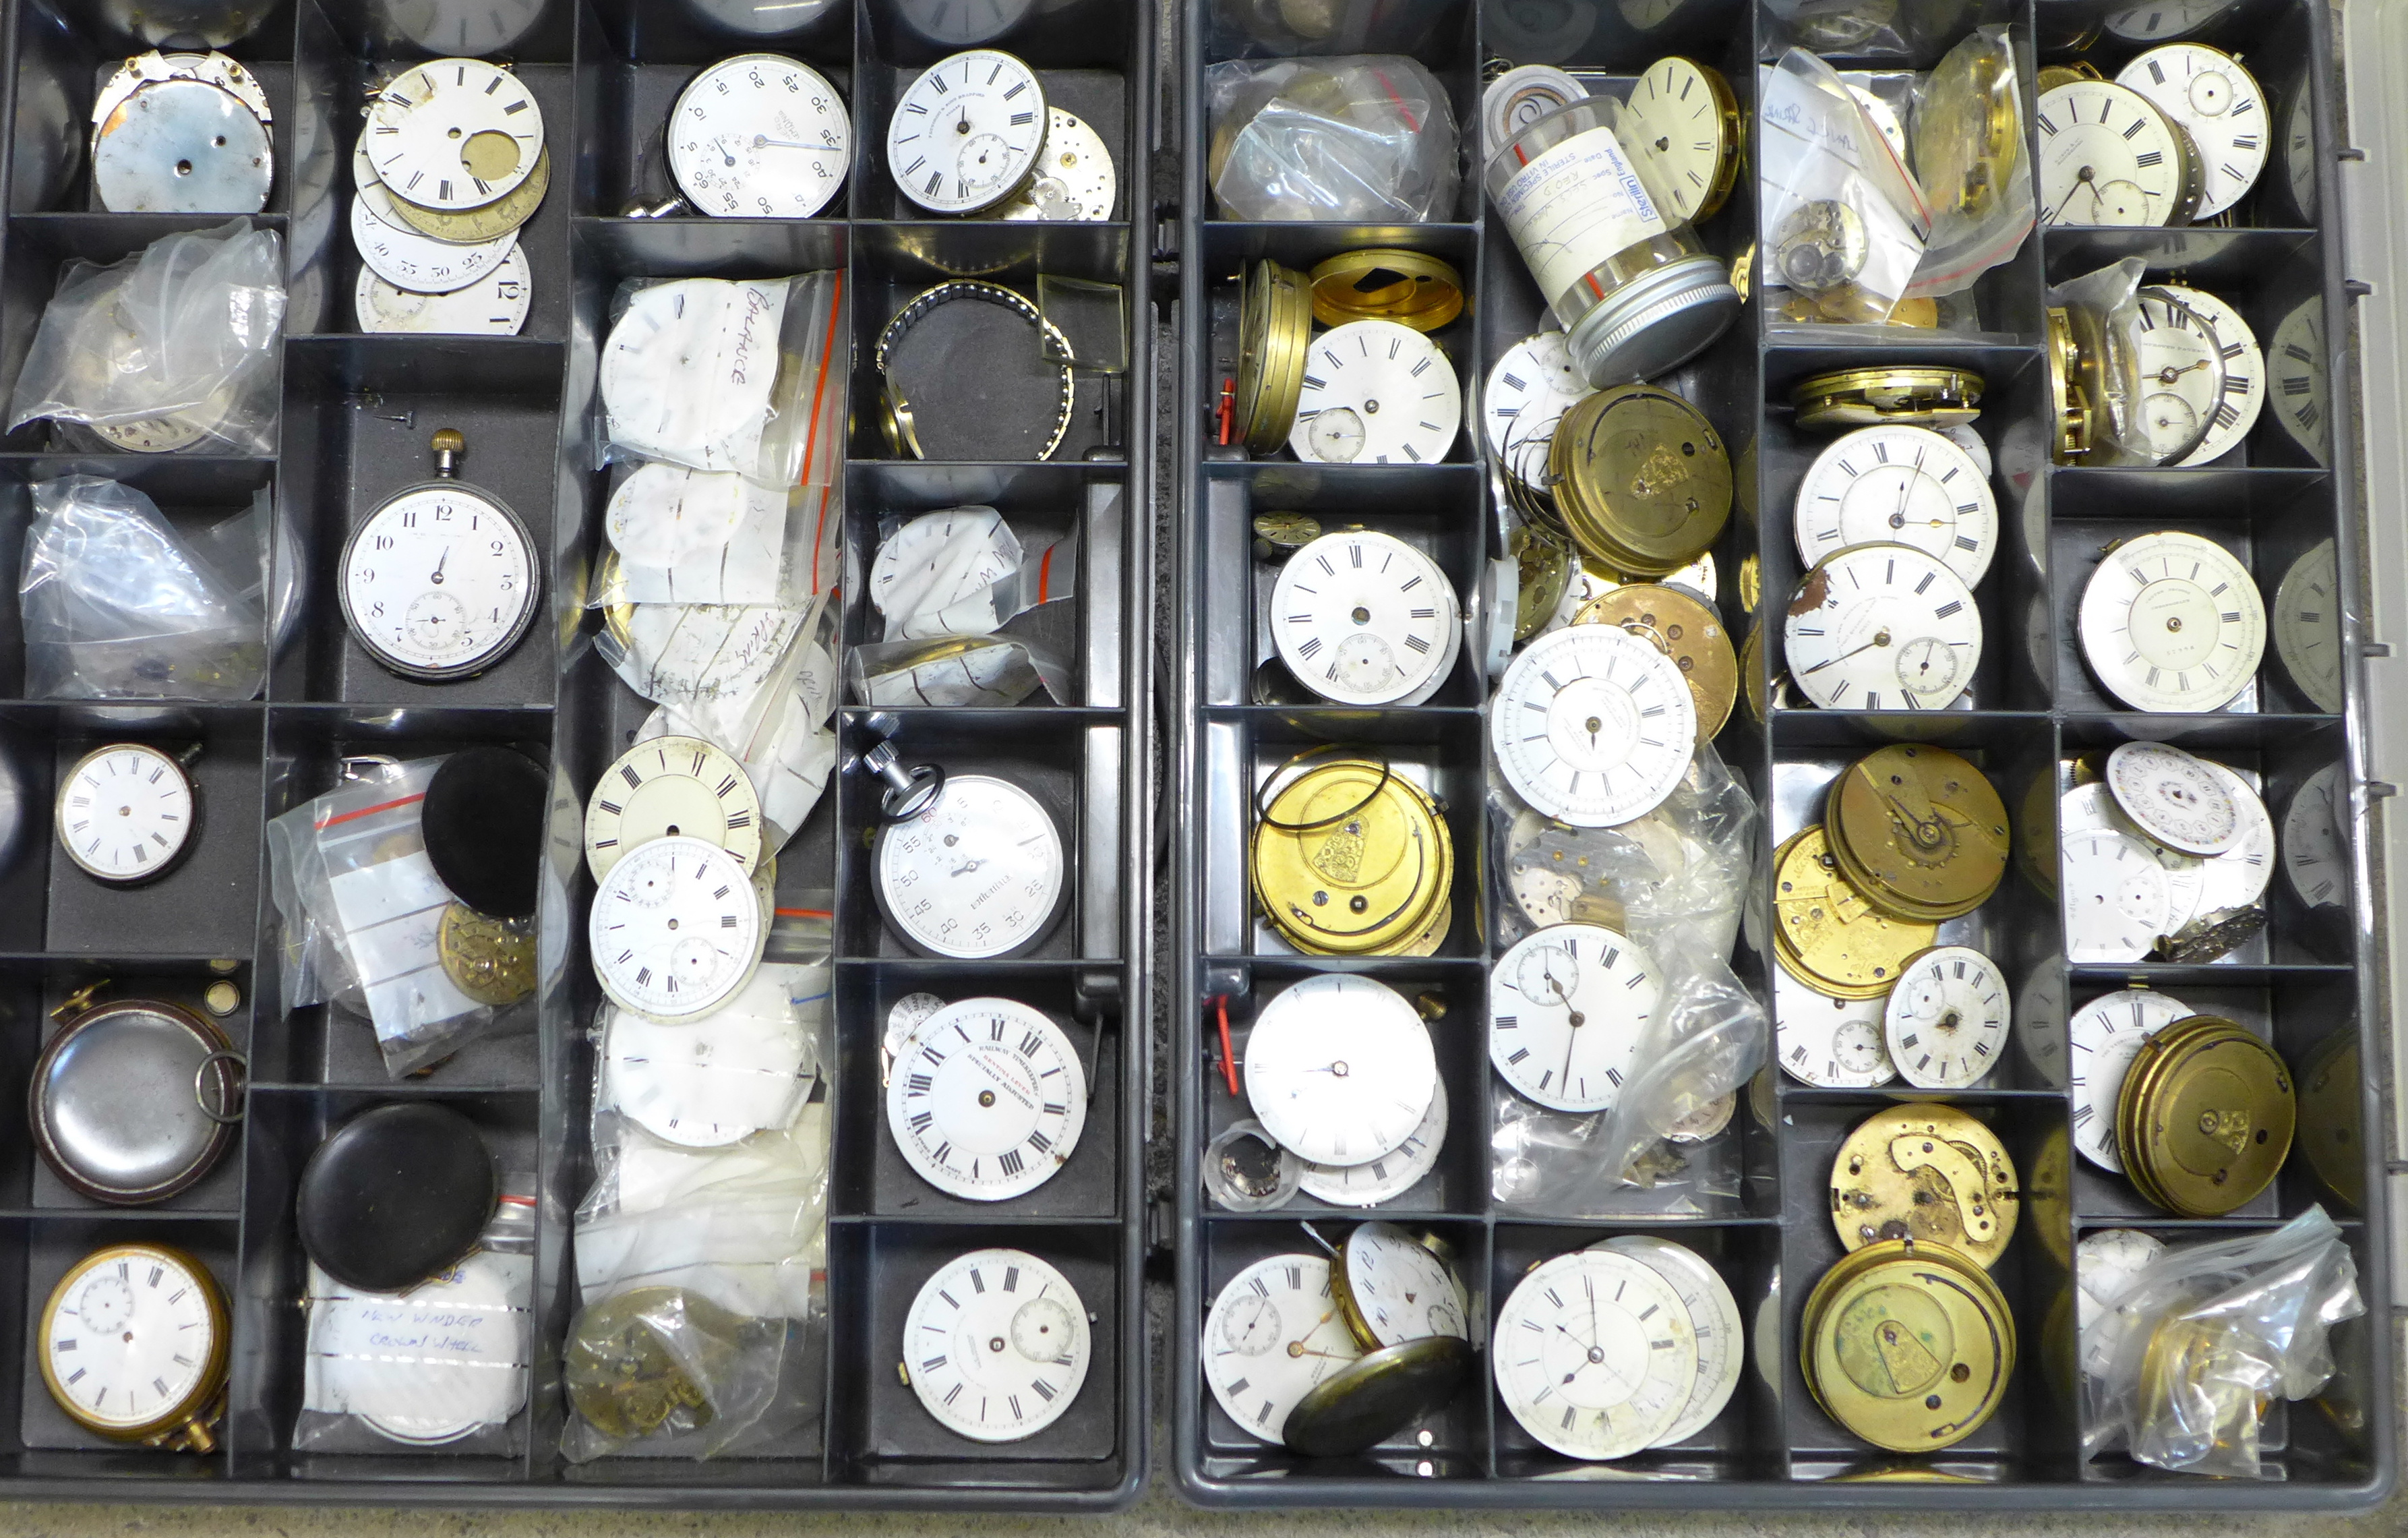 A large collection of pocket watch movements and dials plus an Action Timer stopwatch